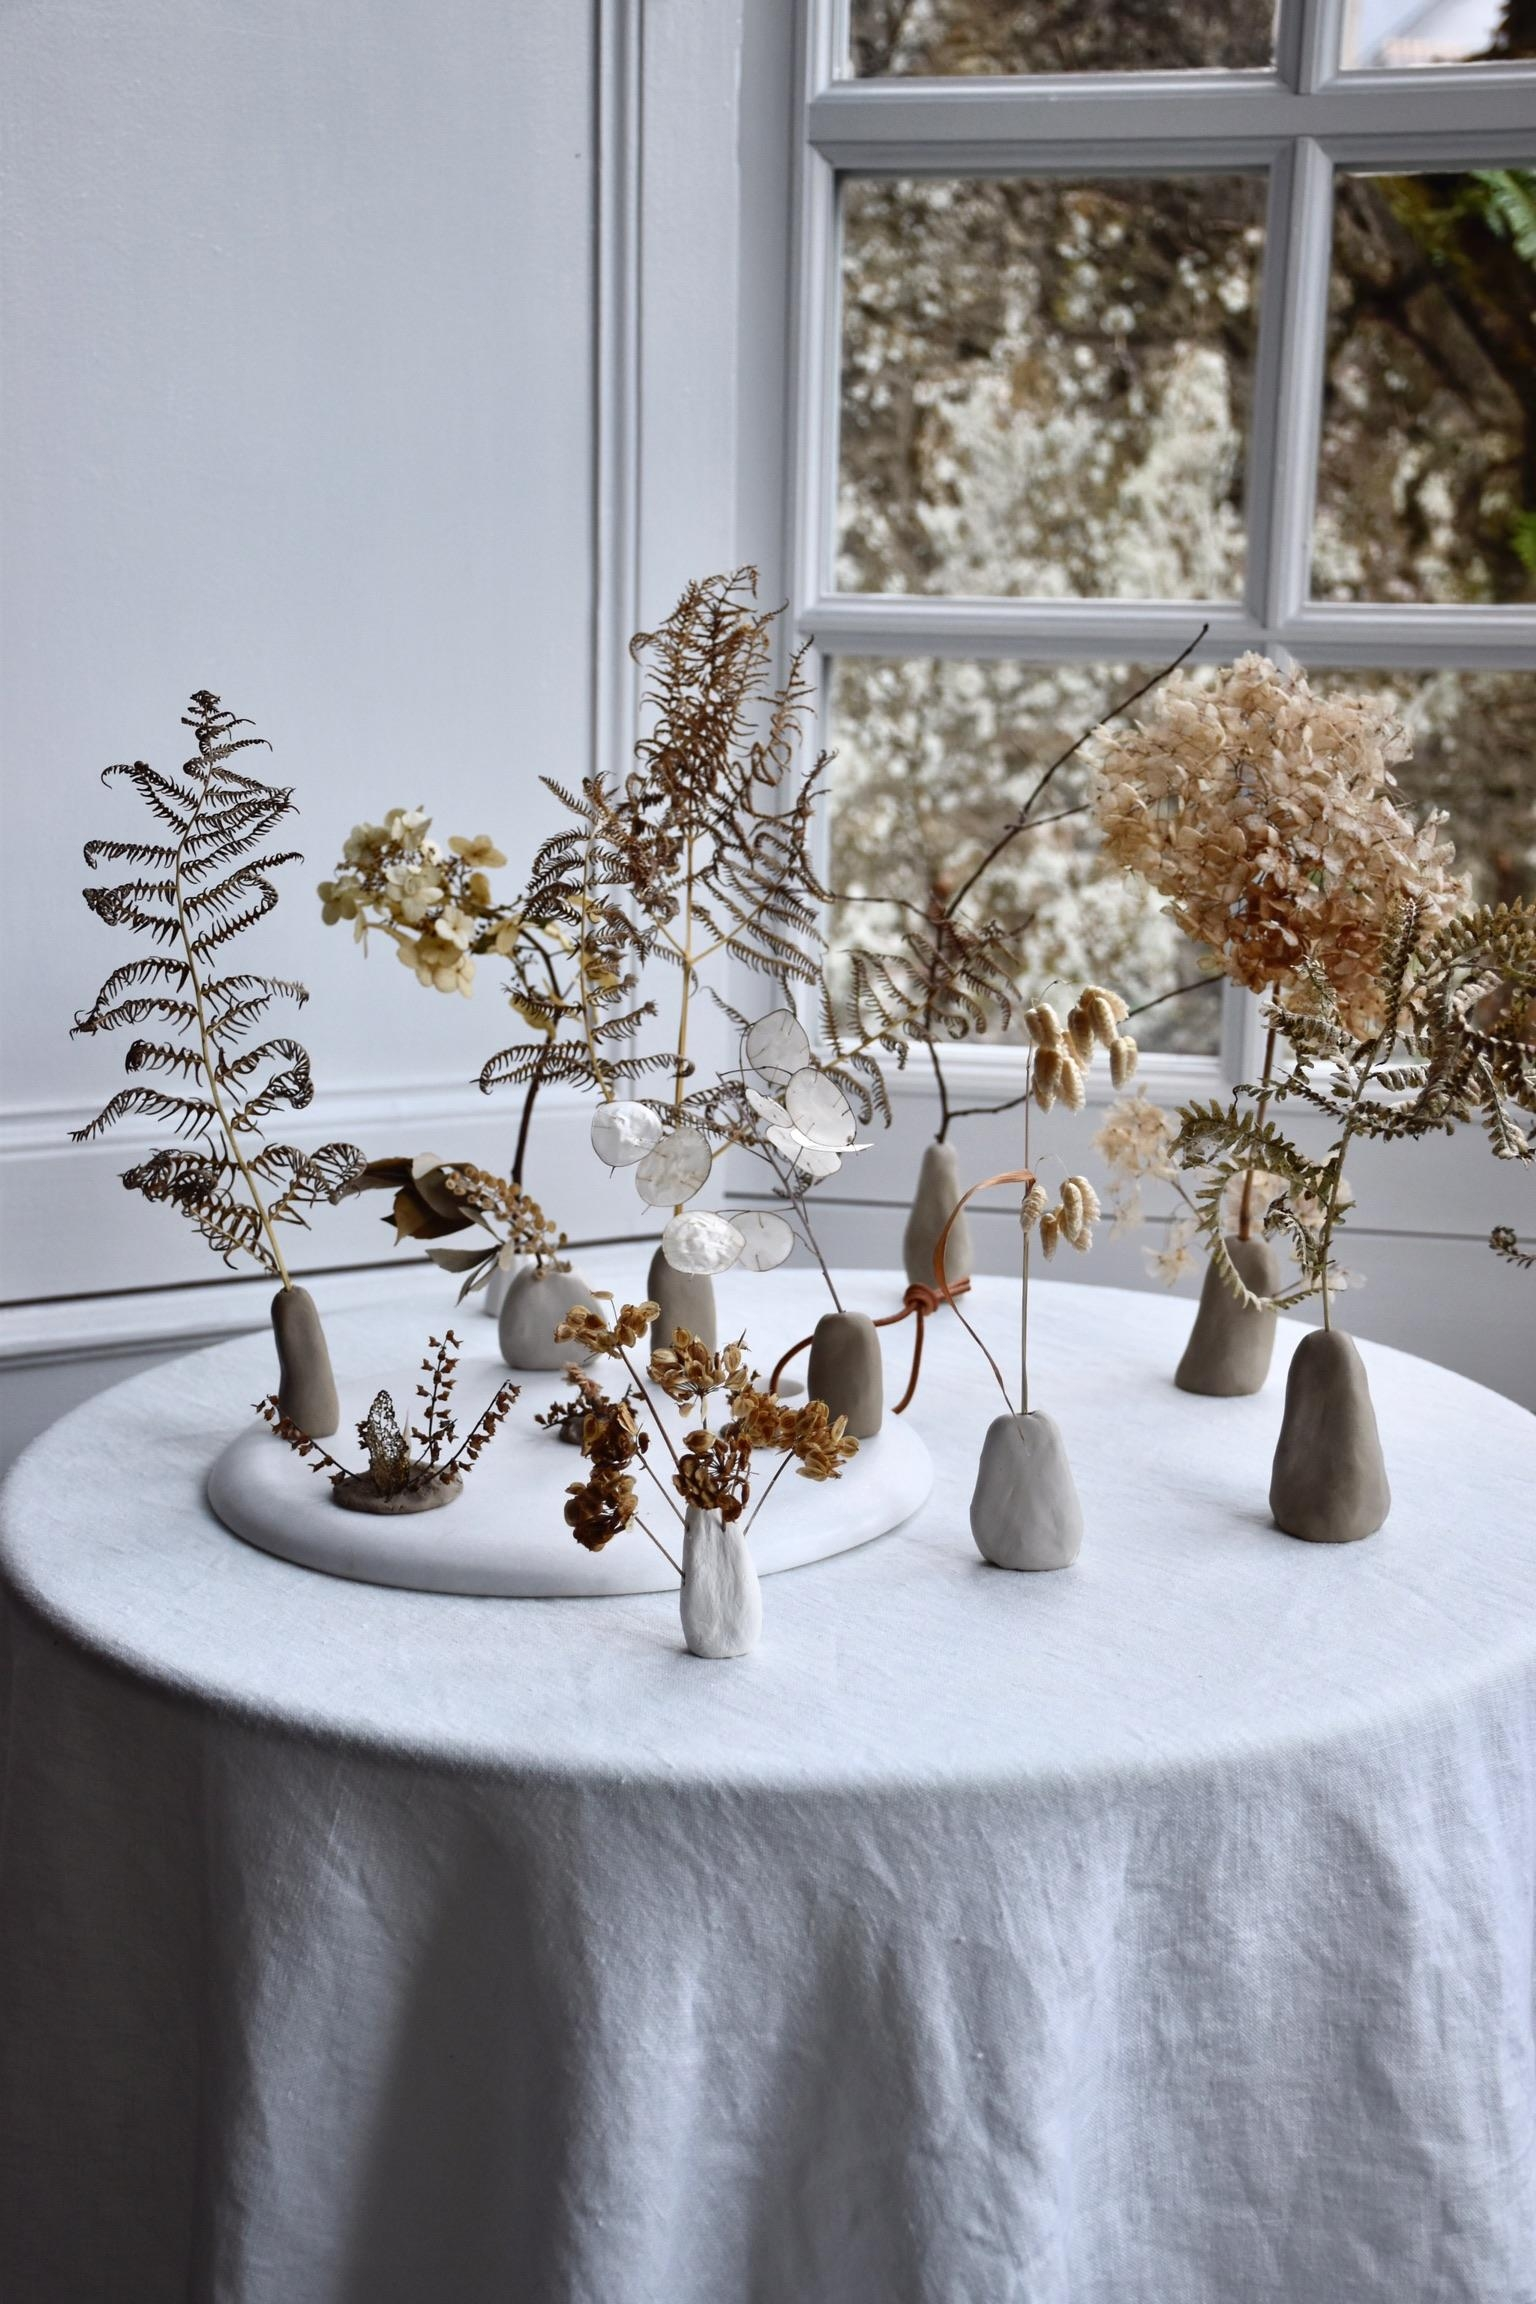 Magical Forest #diy #ton #bäume #aufmeinemblog